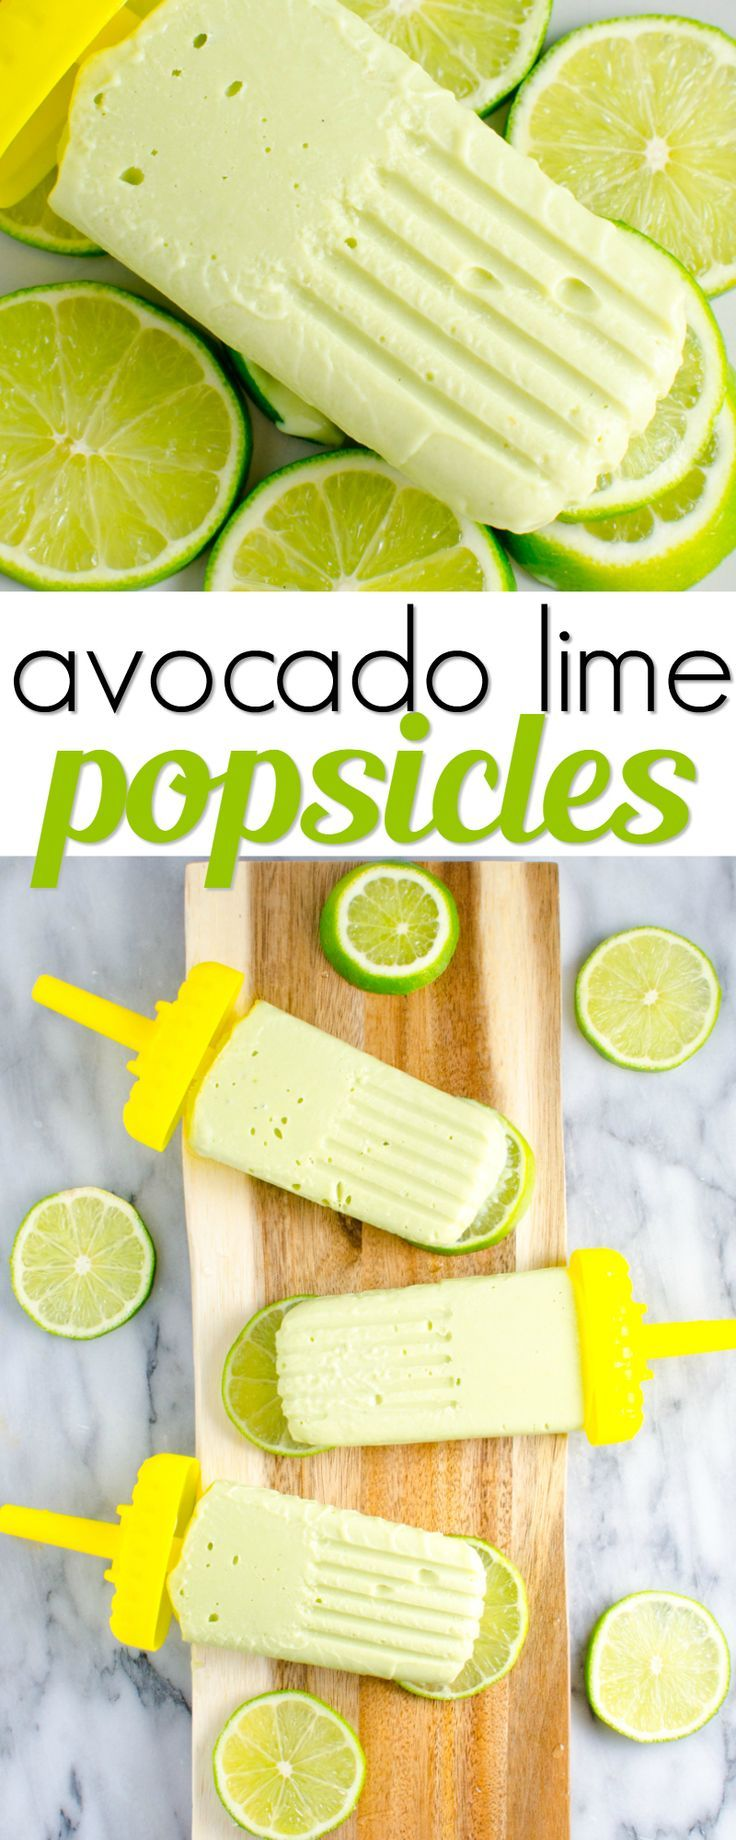 Avocado lime popsicles are the perfectly healthy summer treat! With only 4 simple ingredients these are so easy to make and so refreshing! #MomBlogTourFF AD